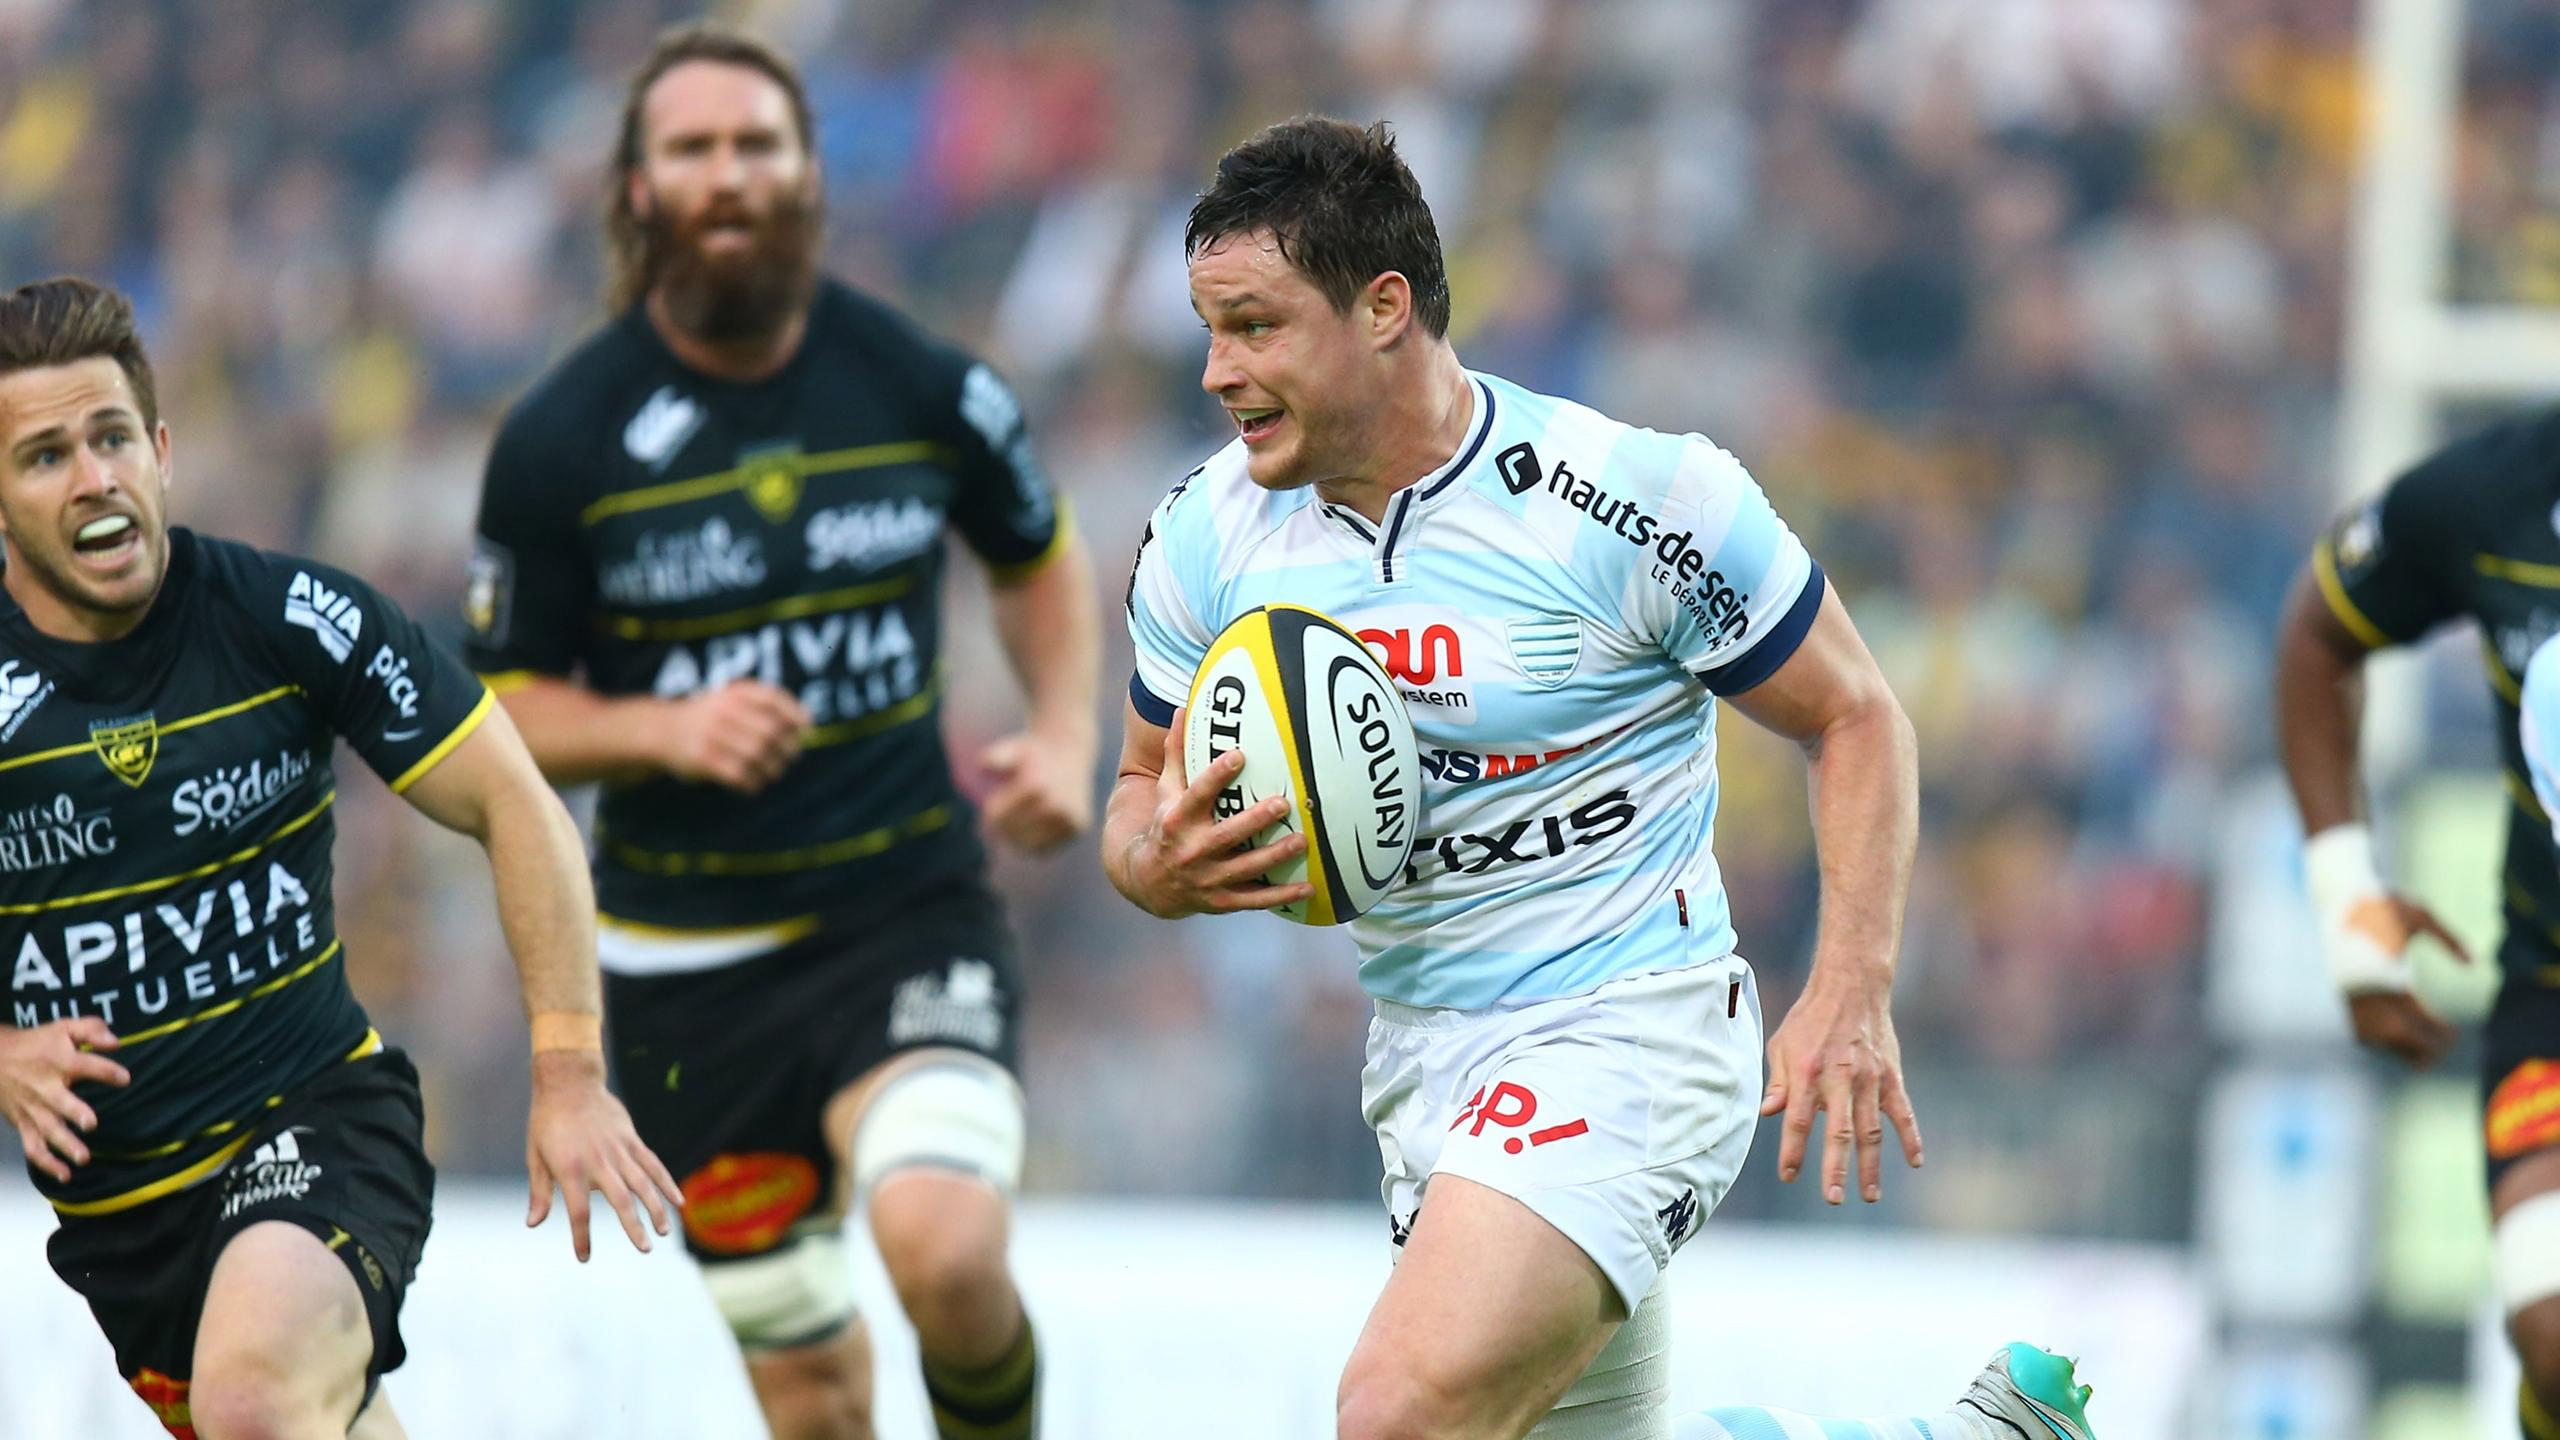 Henry Chavancy (Racing 92) face à La Rochelle - 27 mai 2016